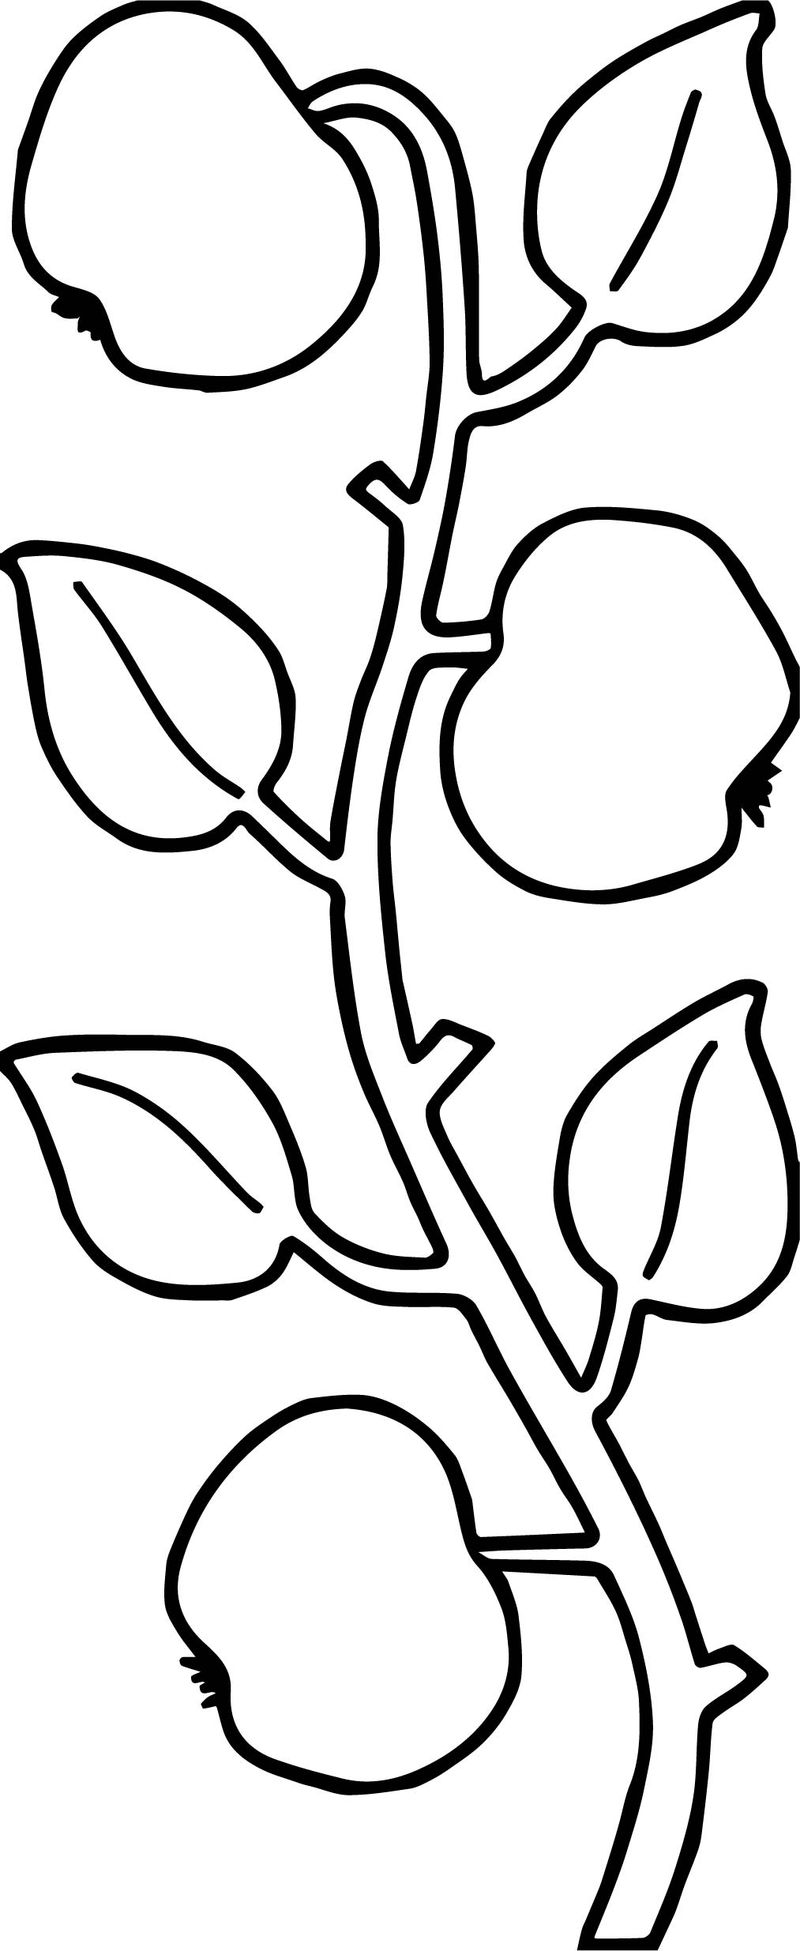 Apple tree ivy coloring page